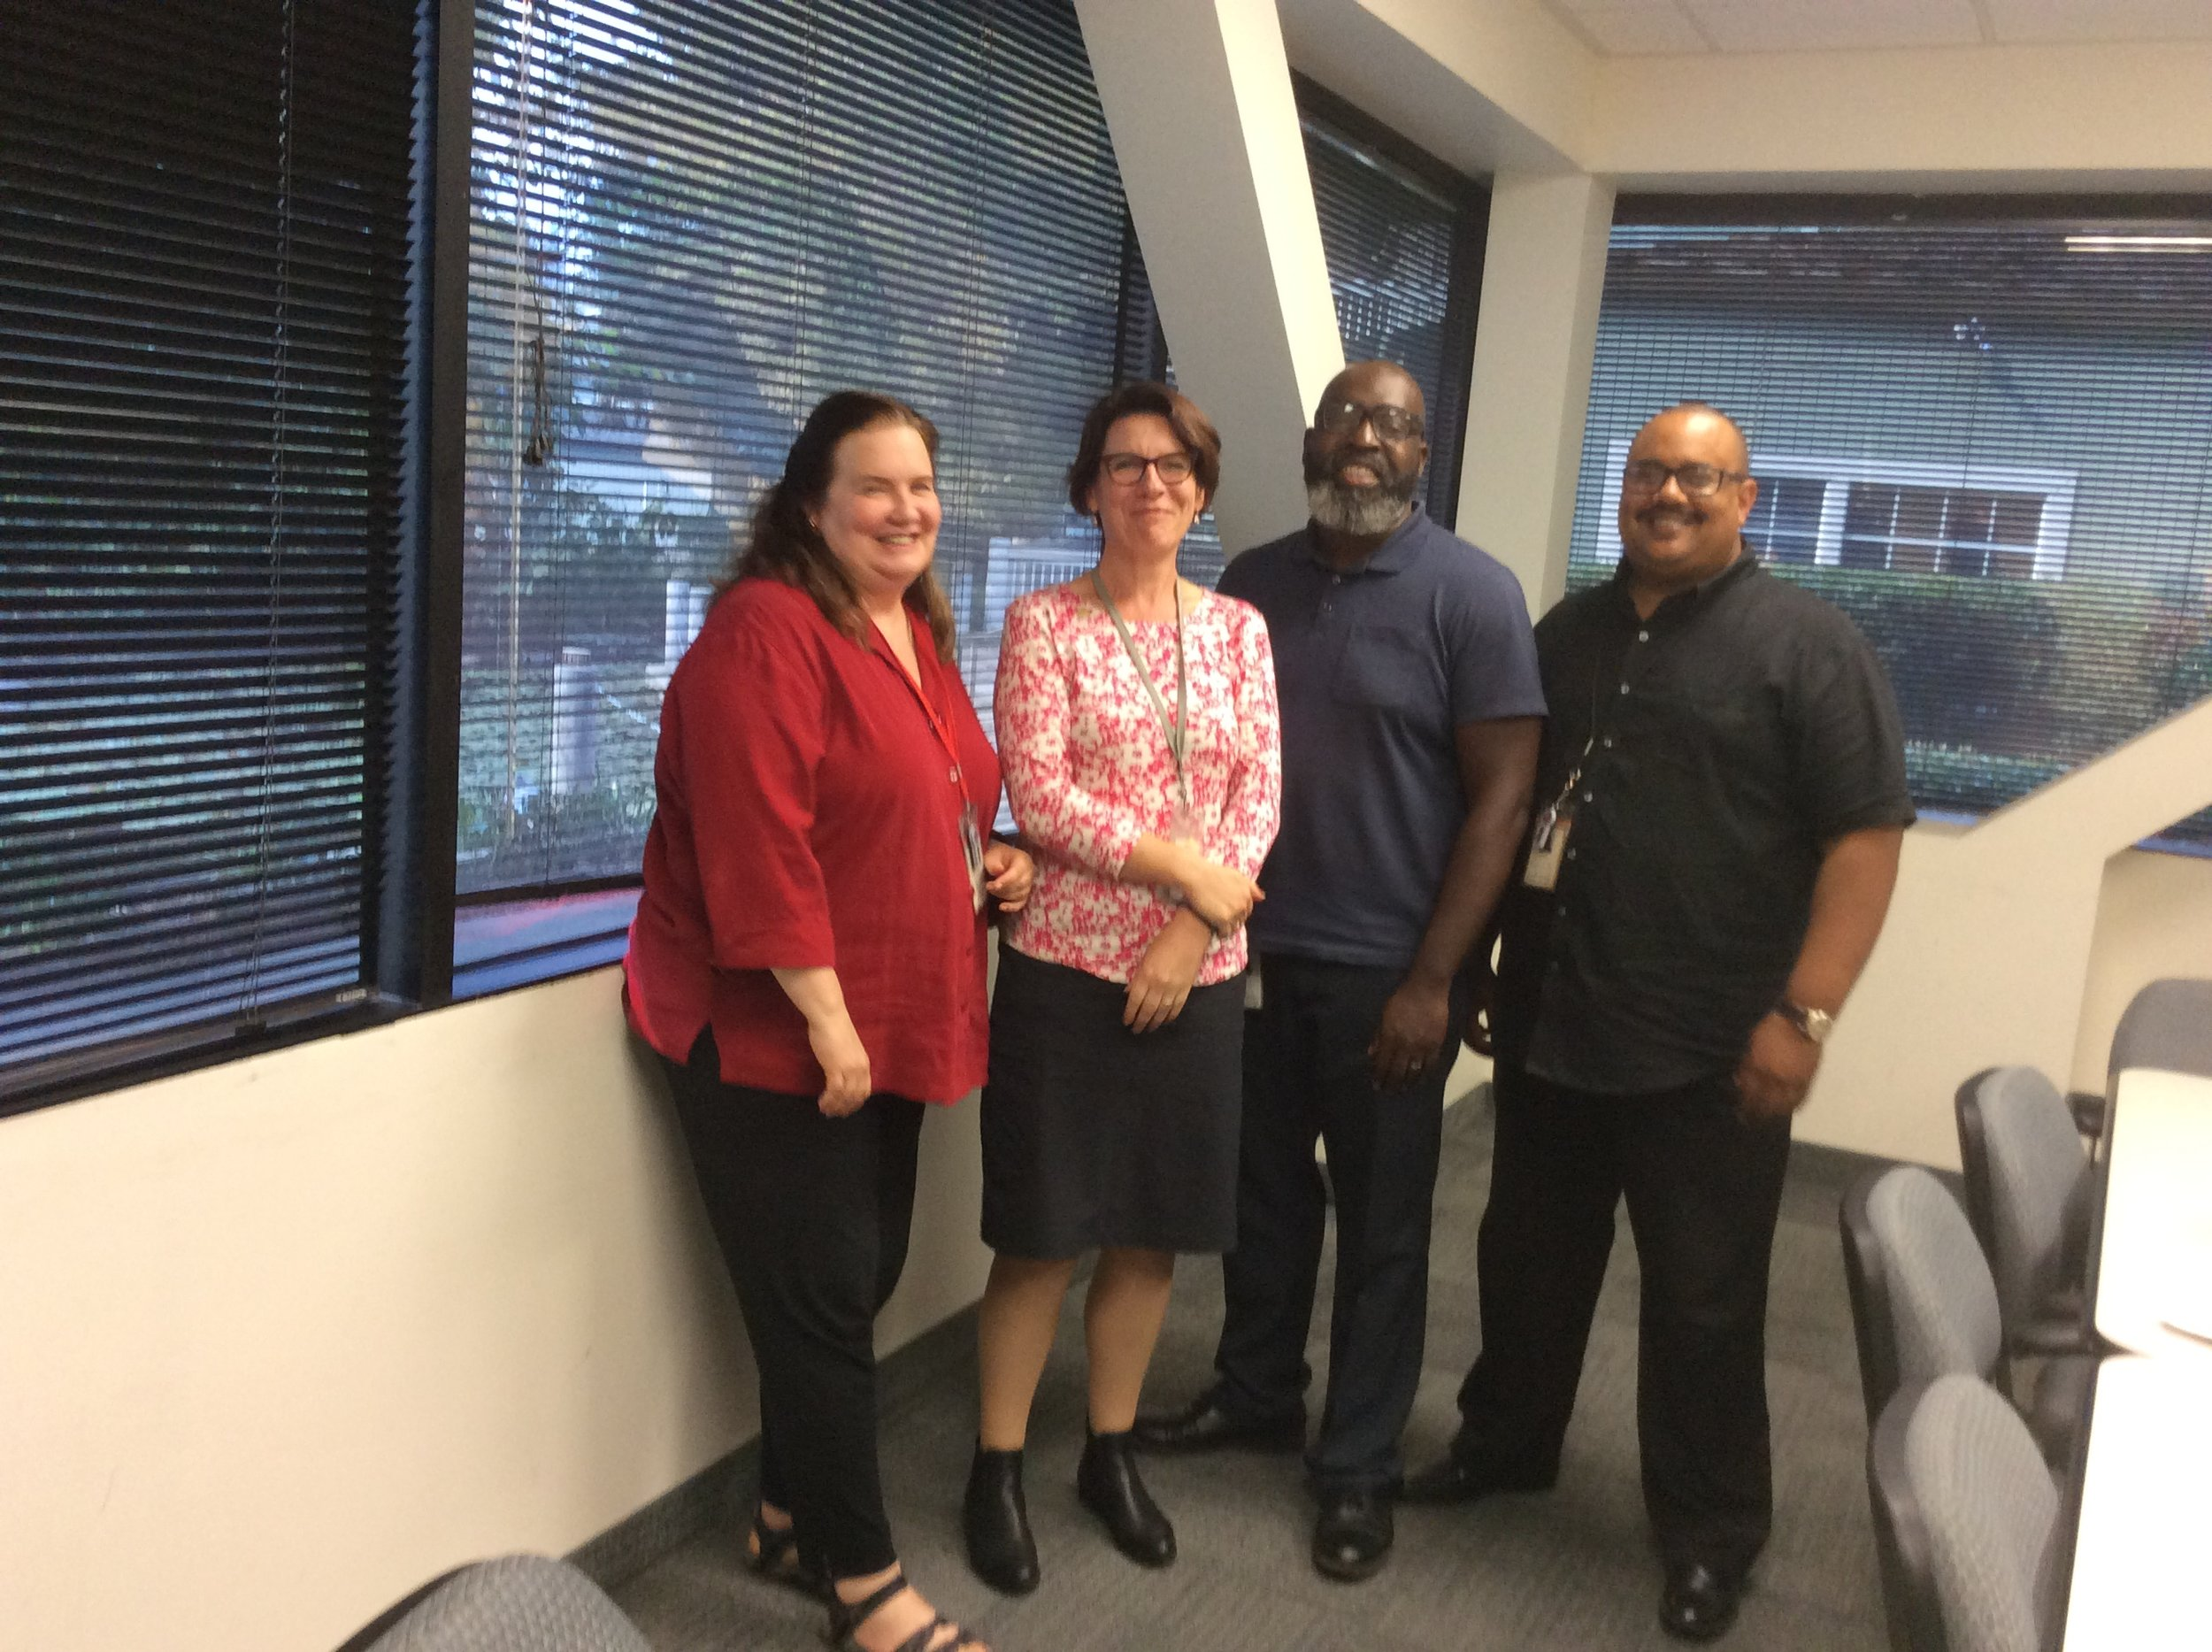 Me with social workers from Contra Costa County who have worked with parent partners to assist families reunify with their children. (Kim, Me, Johnson and Christian)